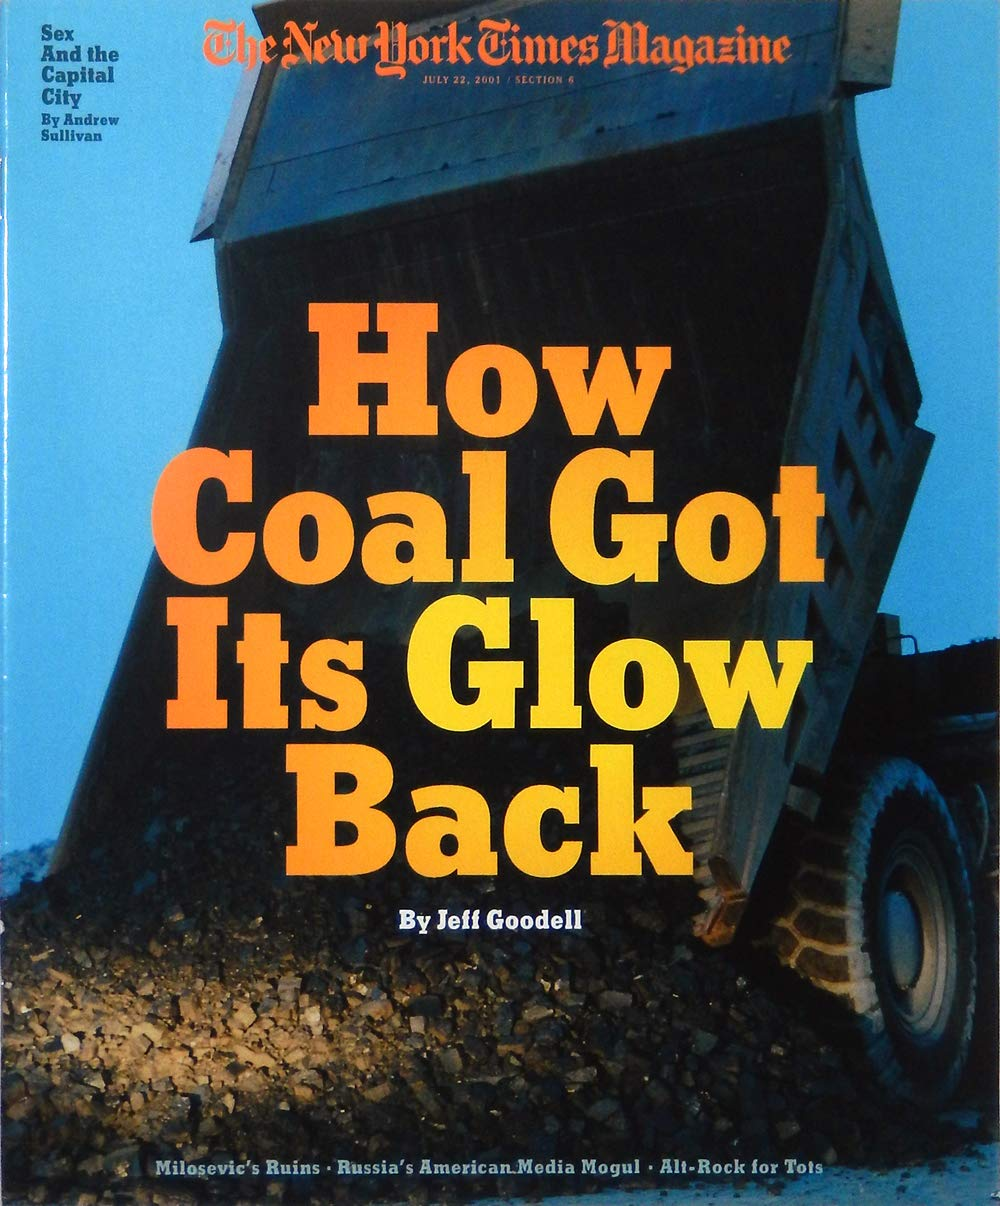 the new york times magazine july 22 2001 how coal got its glow back